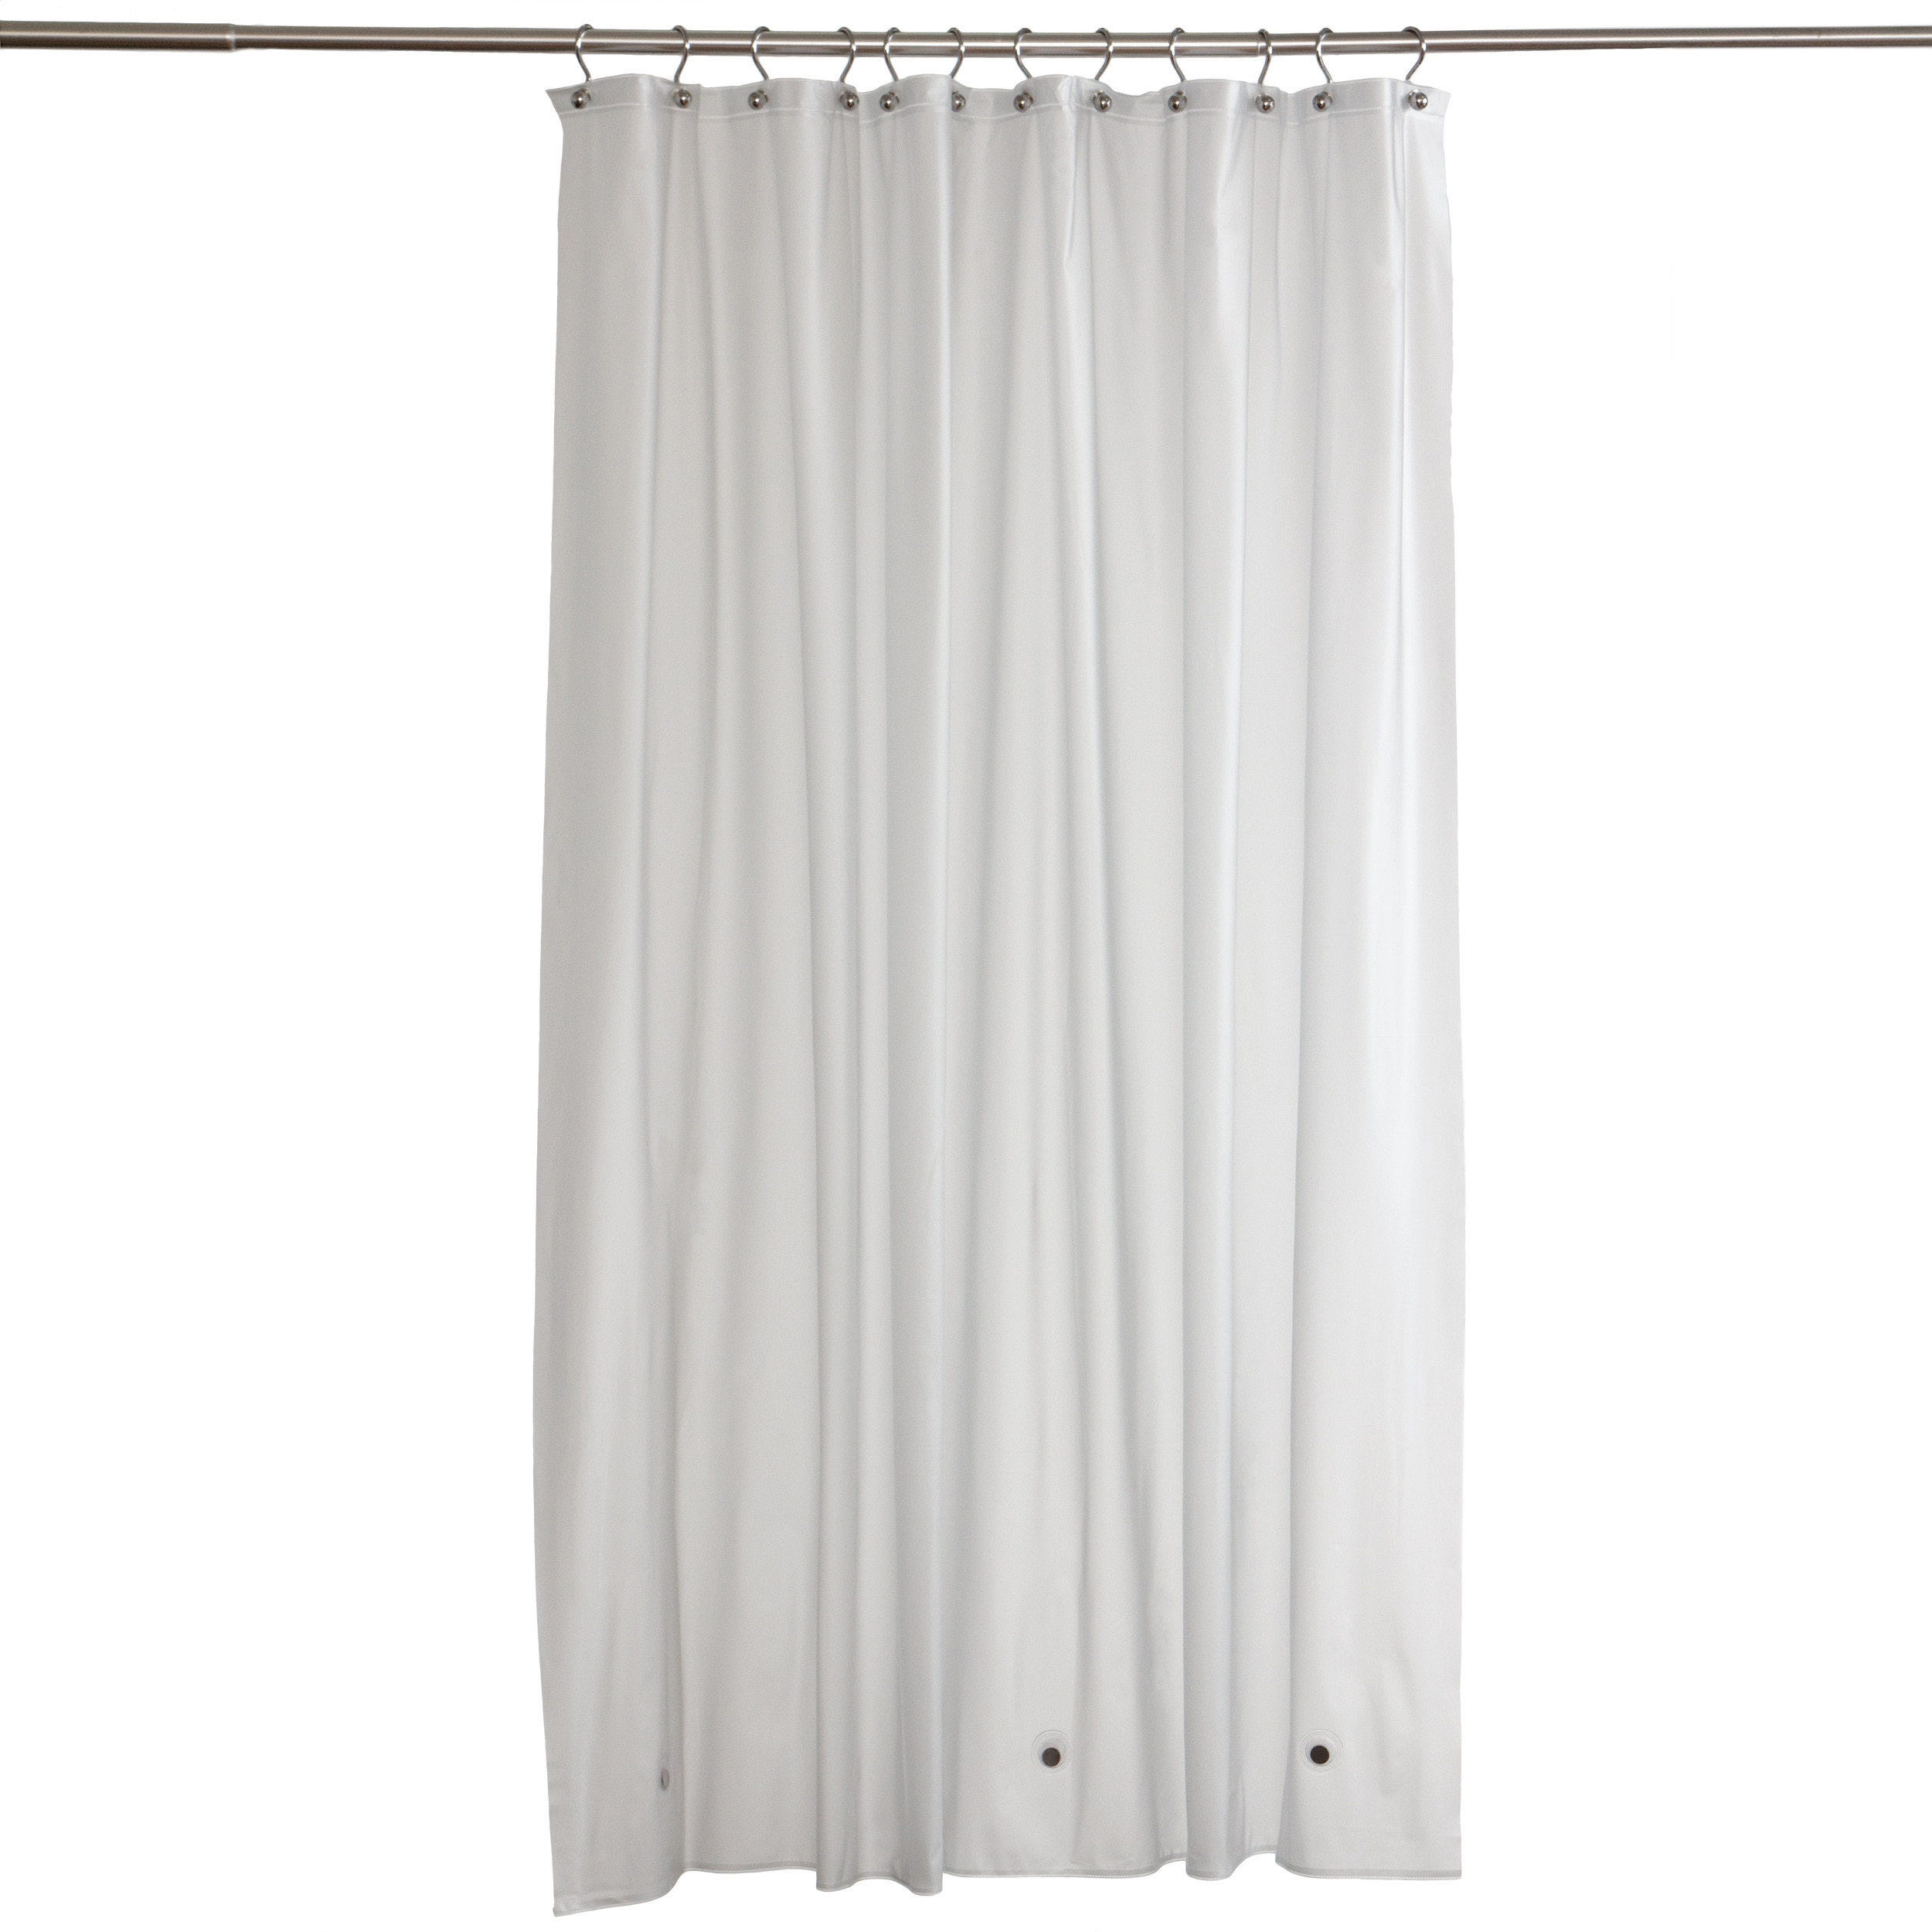 Zenith Frosty Clear Commercial Grade Vinyl Shower Curtain...